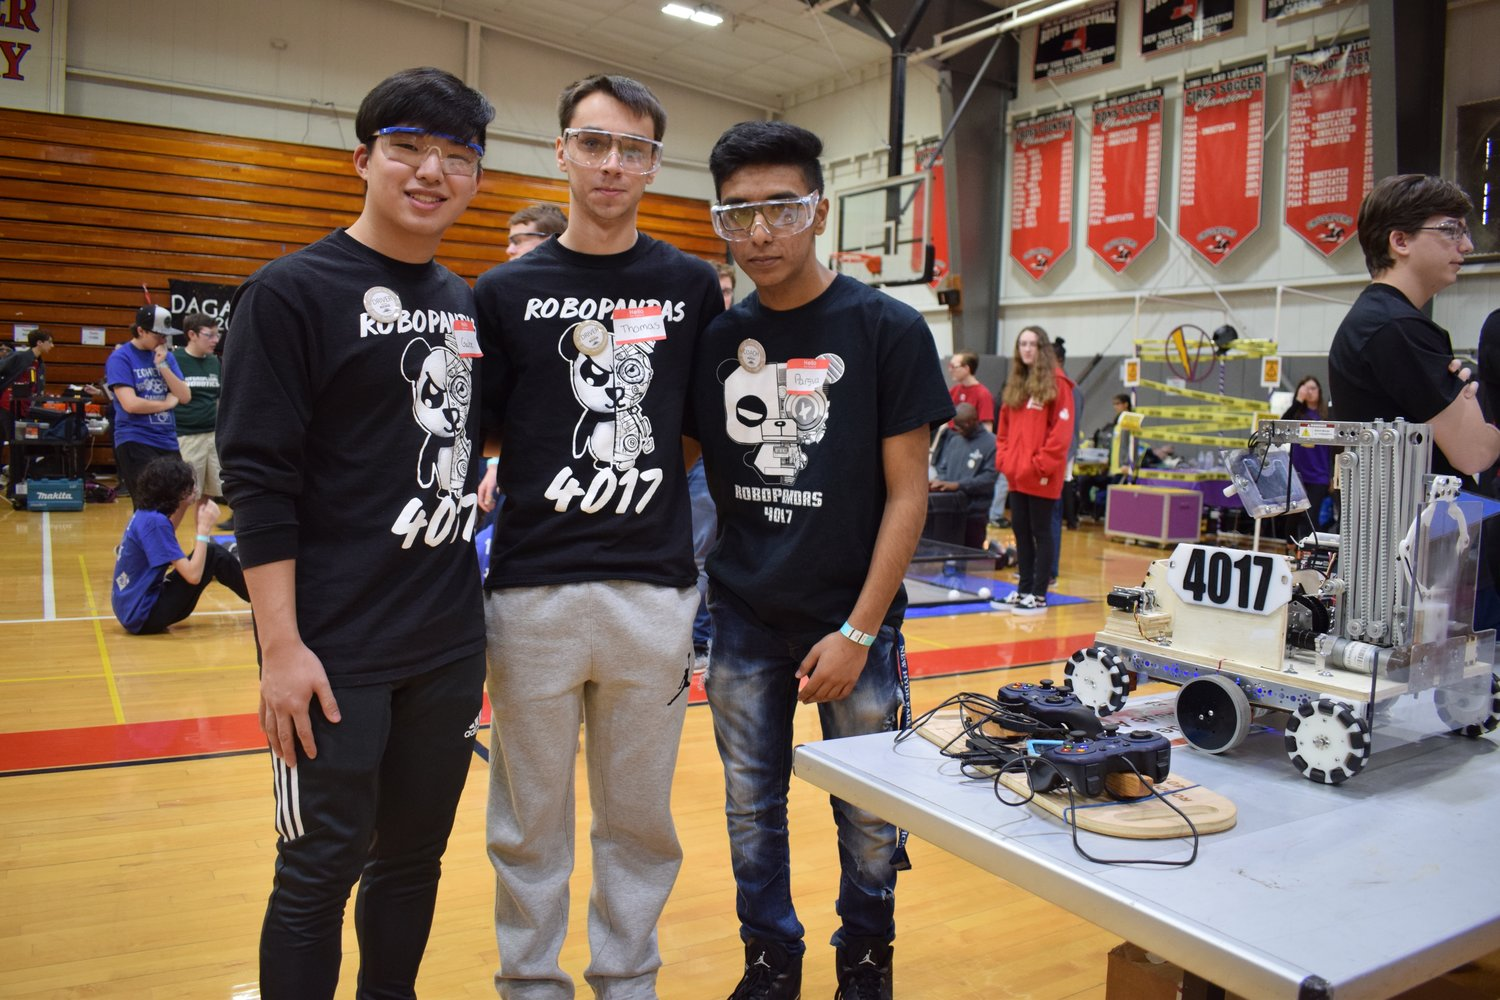 Sewanhaka Robotics Club members, from the left, Gabe Wong, Thomas Van Holten and Parsva Shah led their teams robot through the 2018 FIRST Tech Challenge competition on Jan. 6 at the Long Island Lutheran High School in Glen Head.